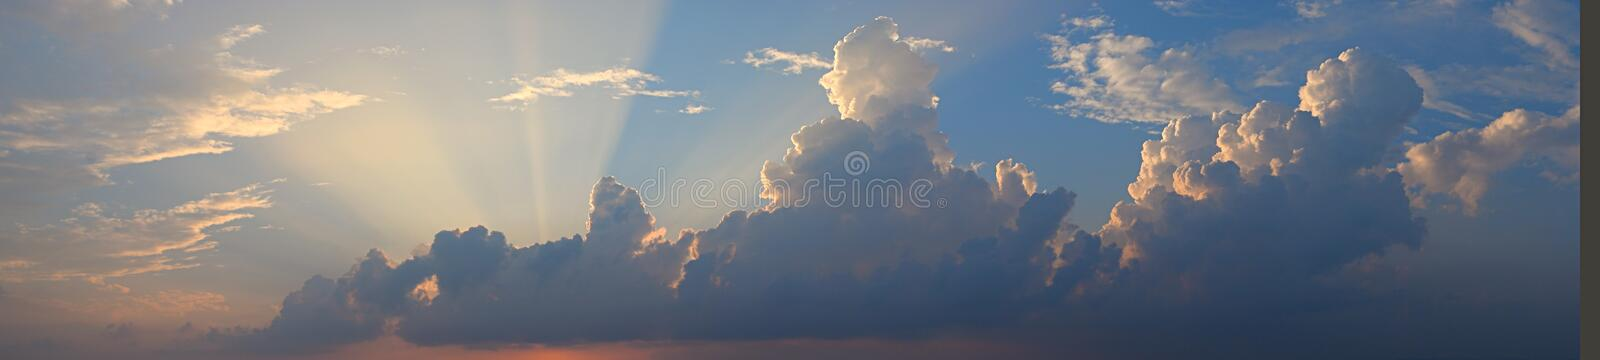 Golden Yellow Crepuscular Sun Rays from Dark Clouds in Blue Sky - Natural Background Skyscape stock images